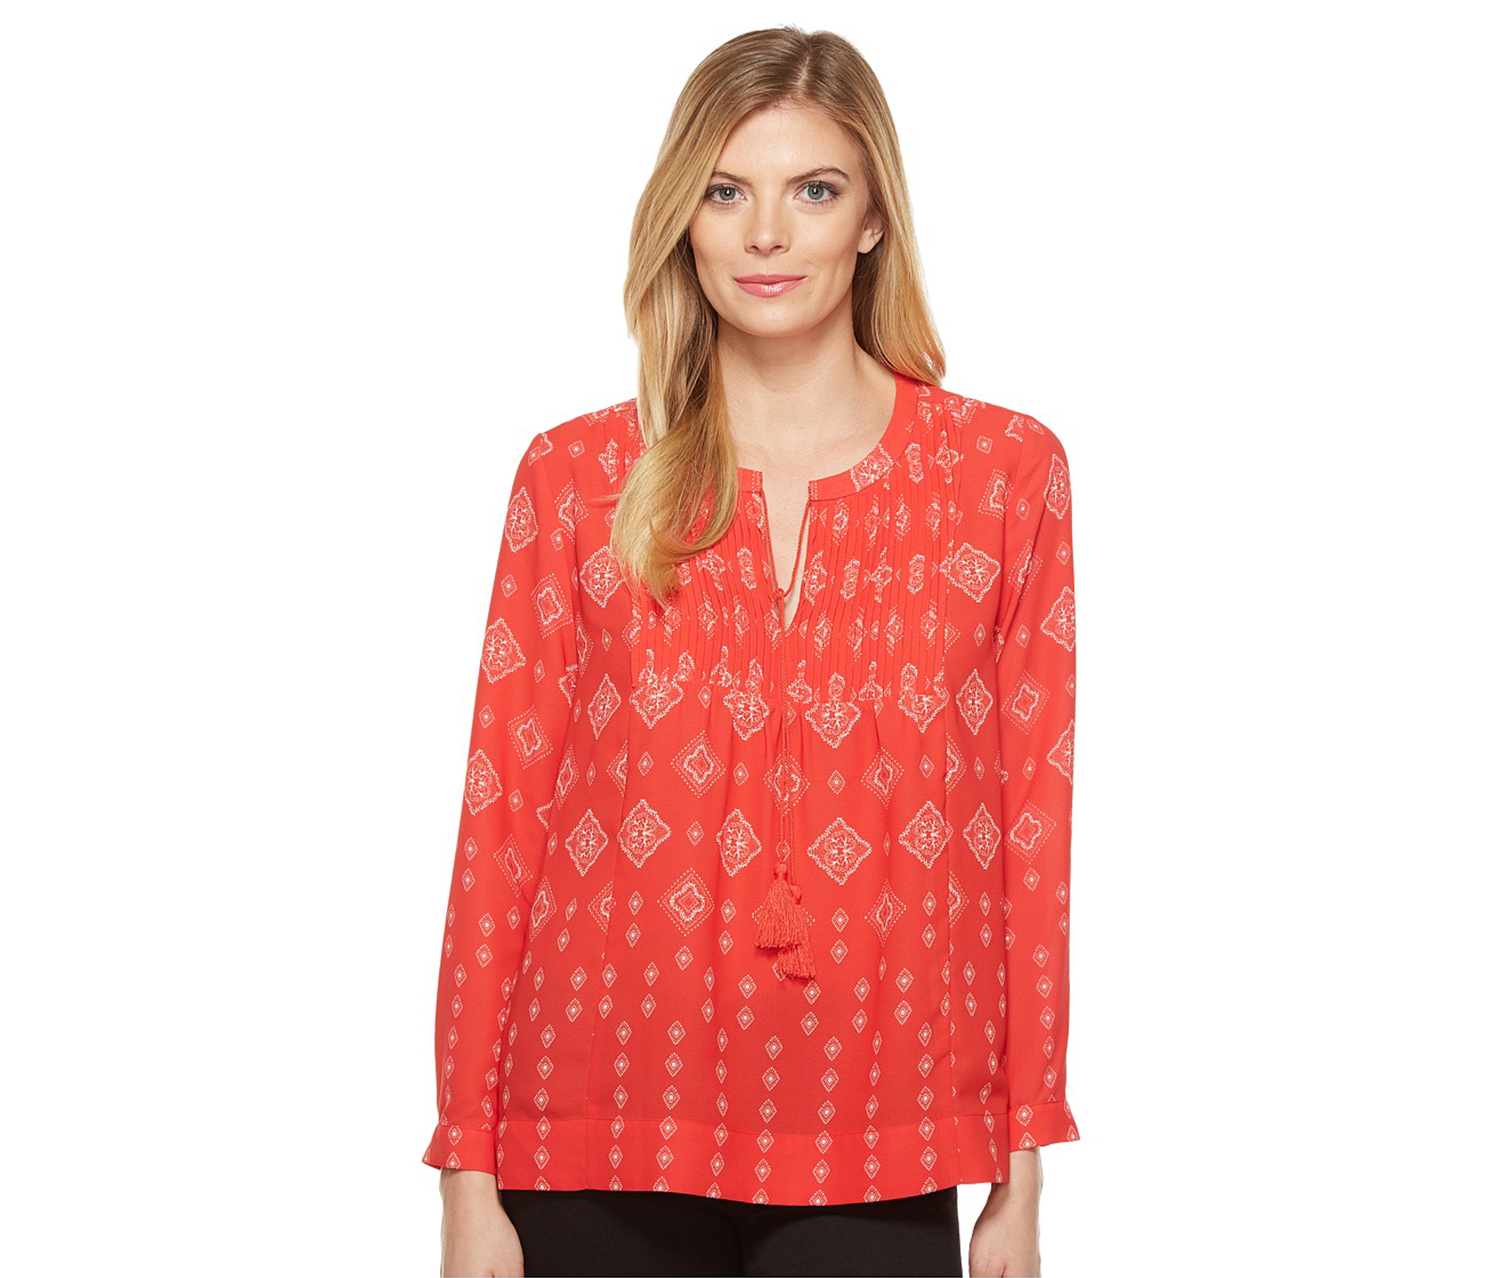 NYDJ Women's Bandana Print Blouse, Red